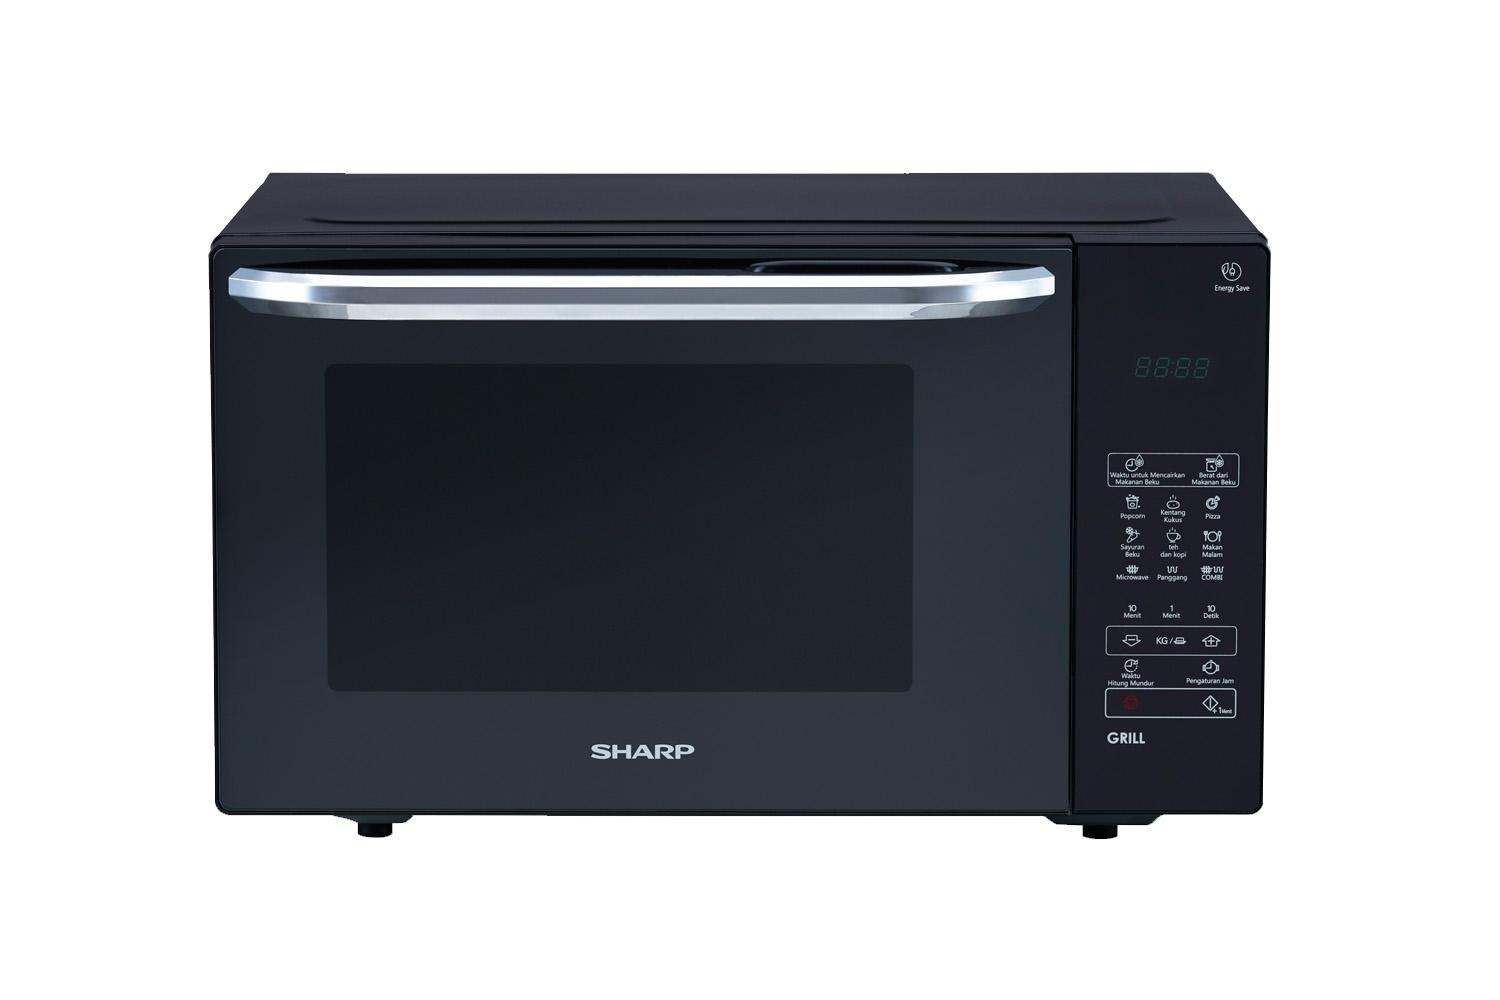 SHARP MICROWAVE GRILL R-735MT(K) FREE LUNCH BOX